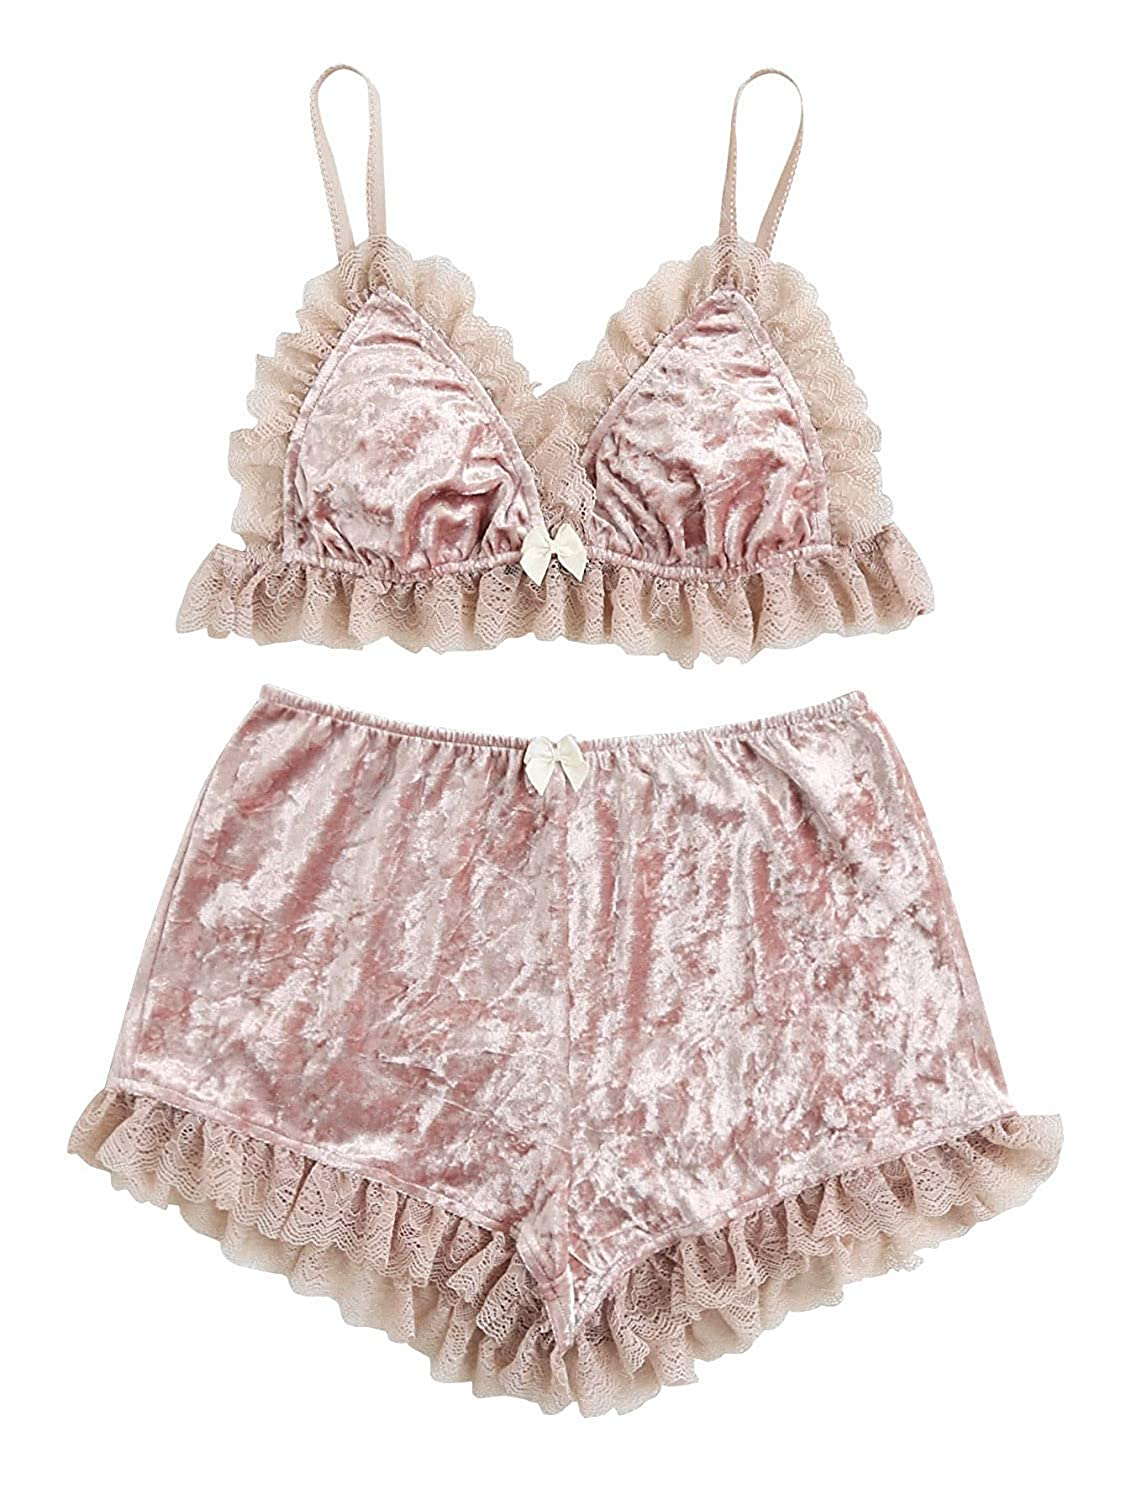 7932080b0 Lace Trim Velvet Bralette and Shorts Pajama Set Romper Teddy Nightwear  Dresses Lingerie Women s( Pink